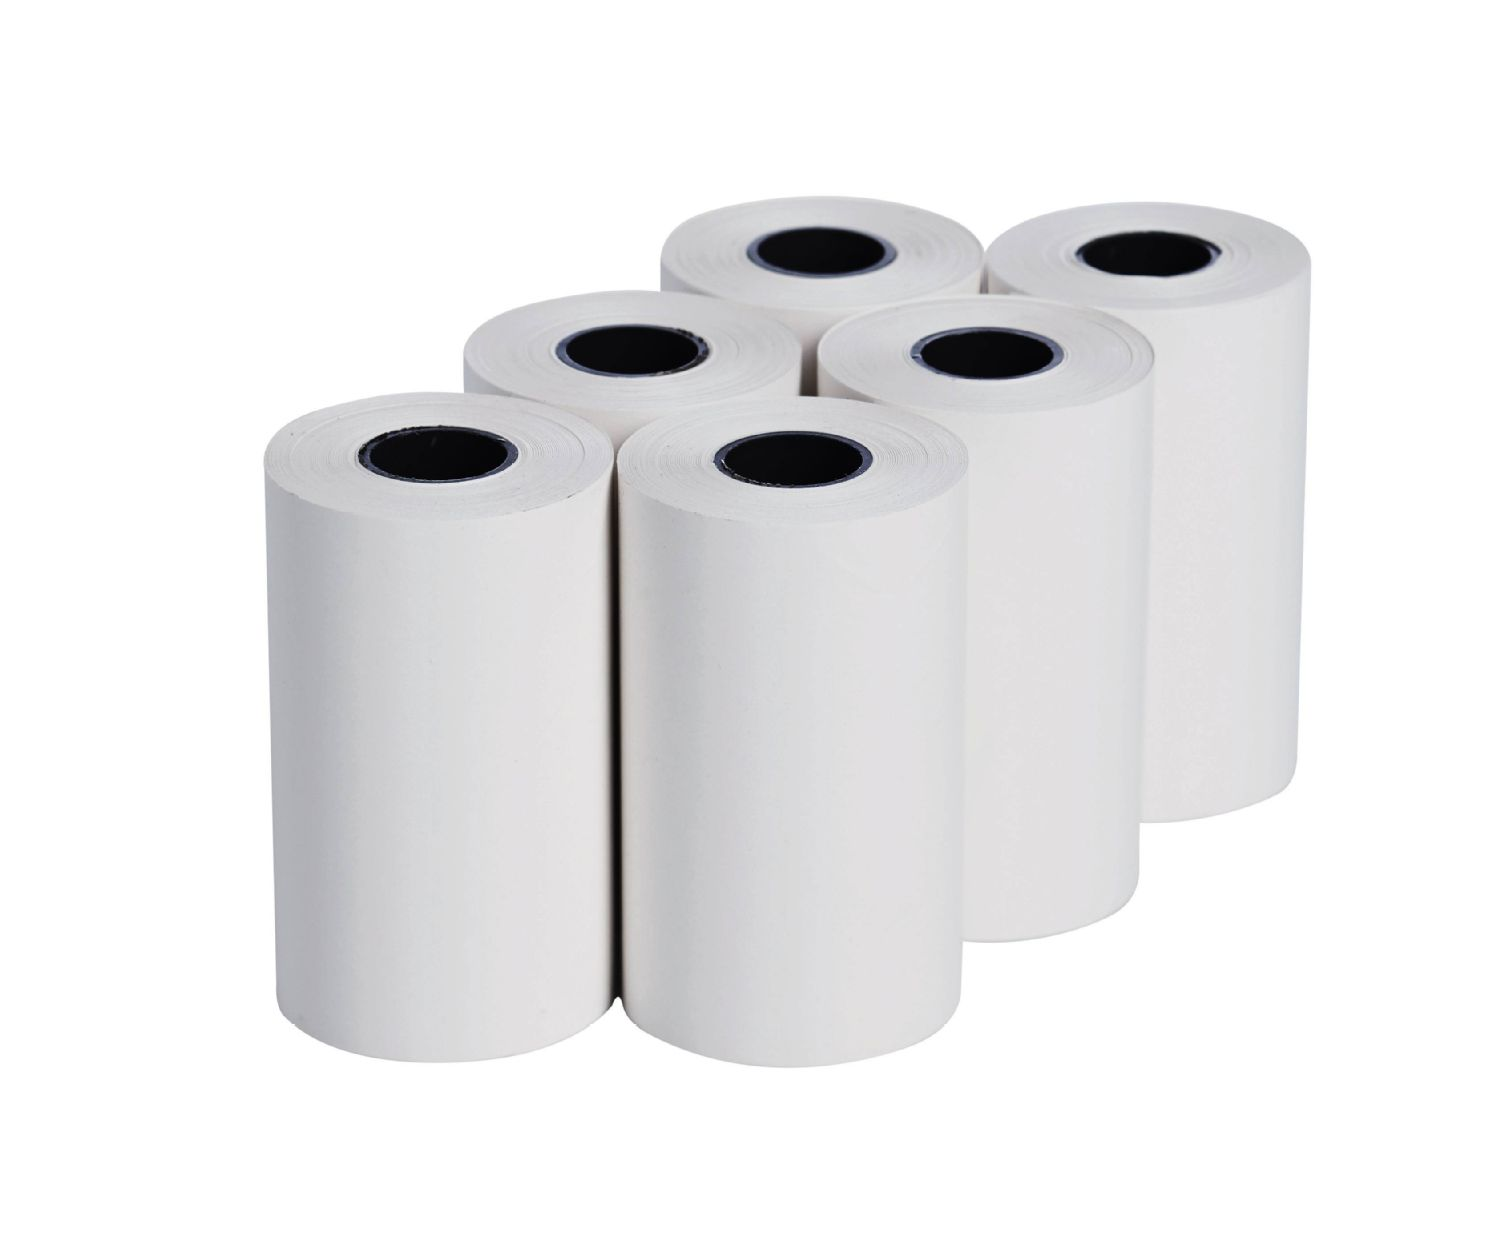 Spare thermal paper